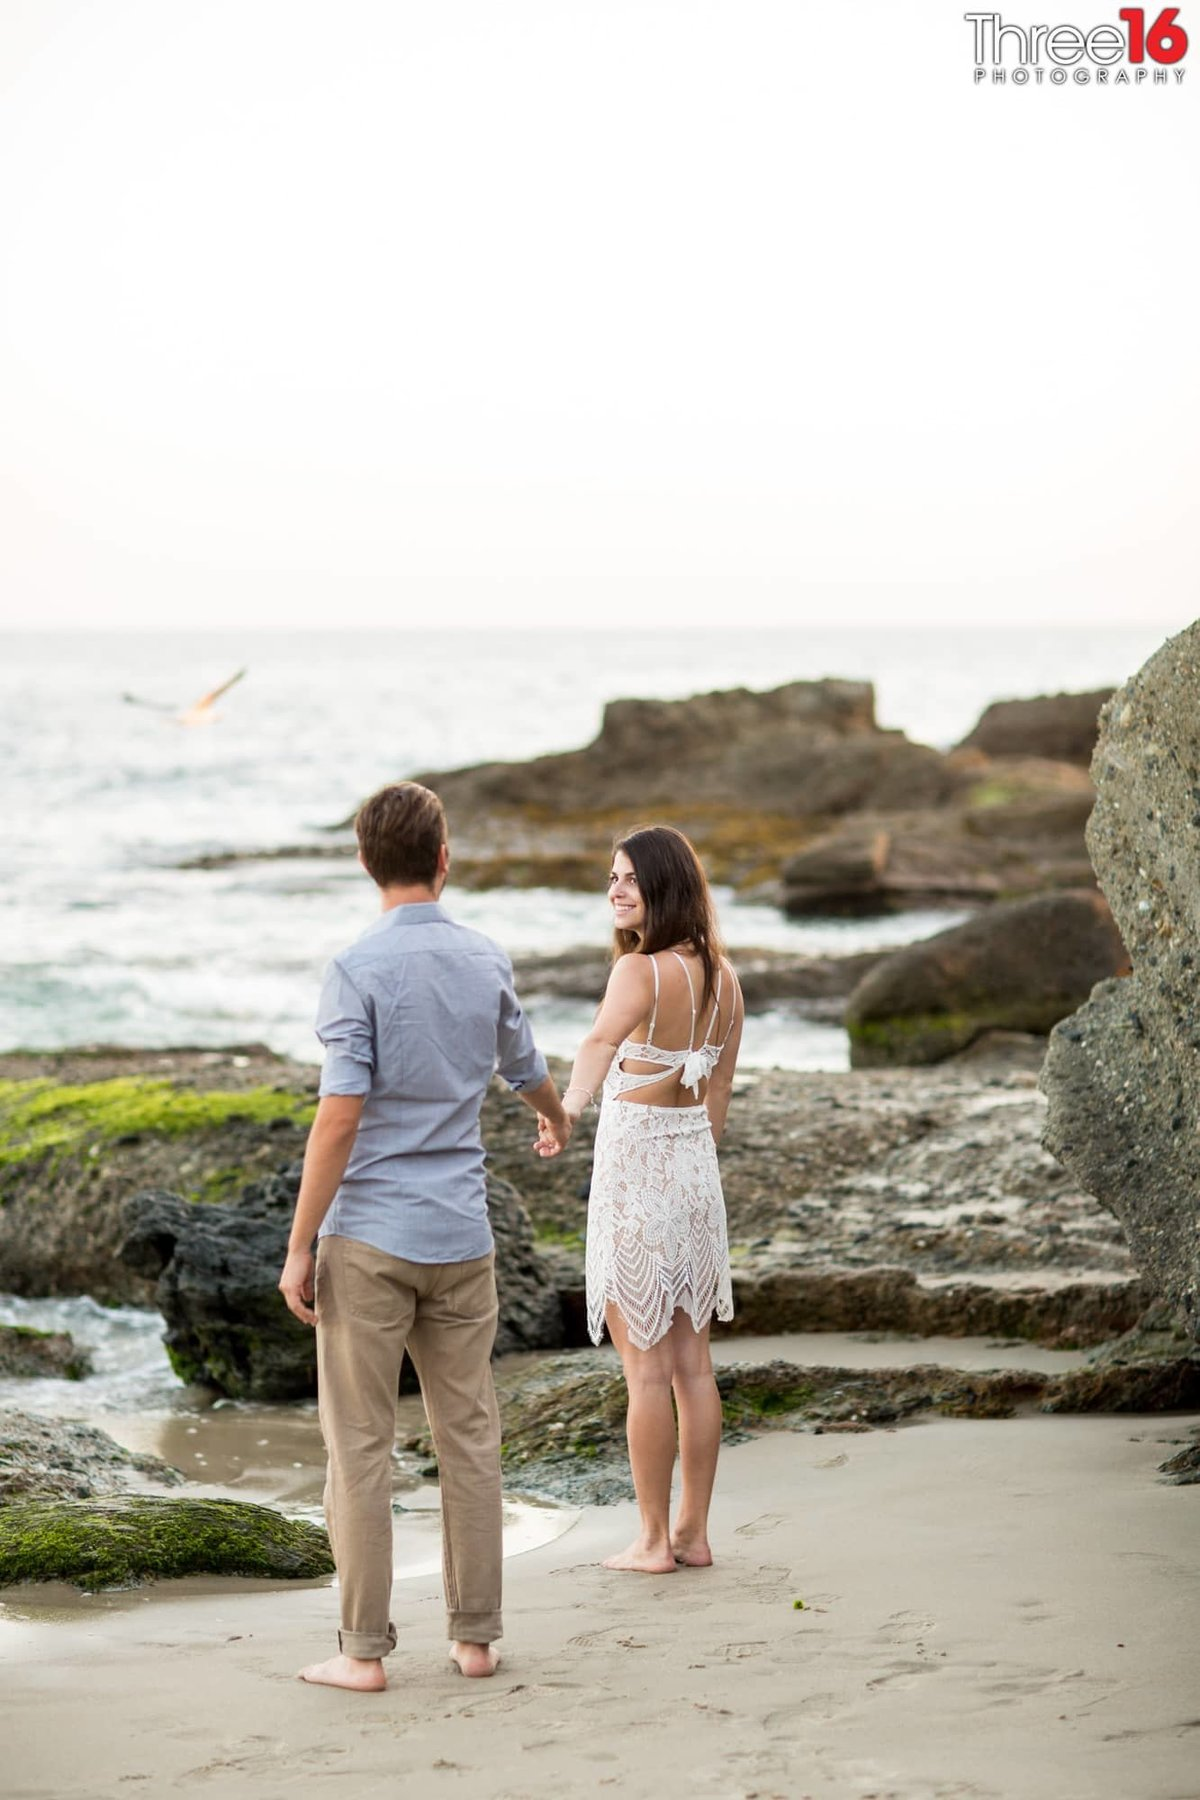 Treasure Island Beach Engagement Photos Professional Beach Orange County Weddings Photography